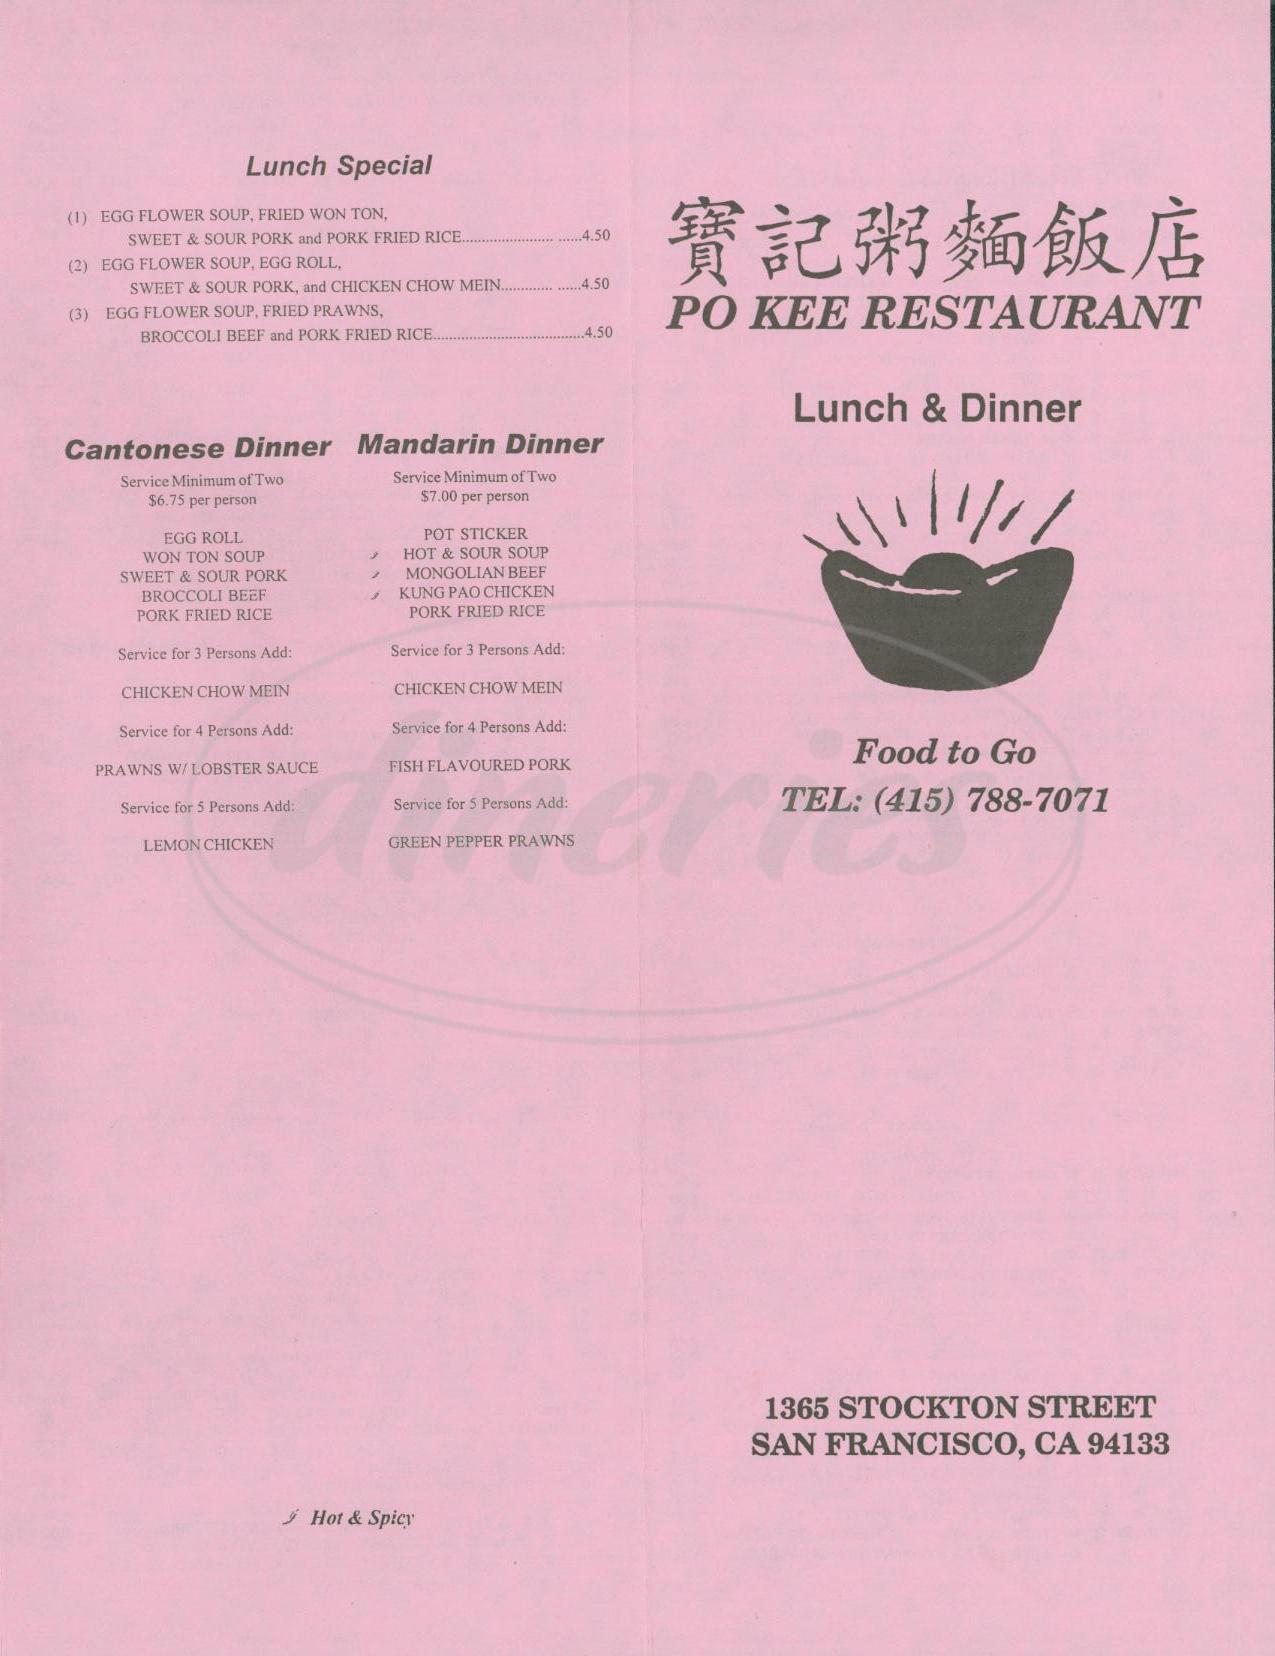 menu for Po Kee Restaurant